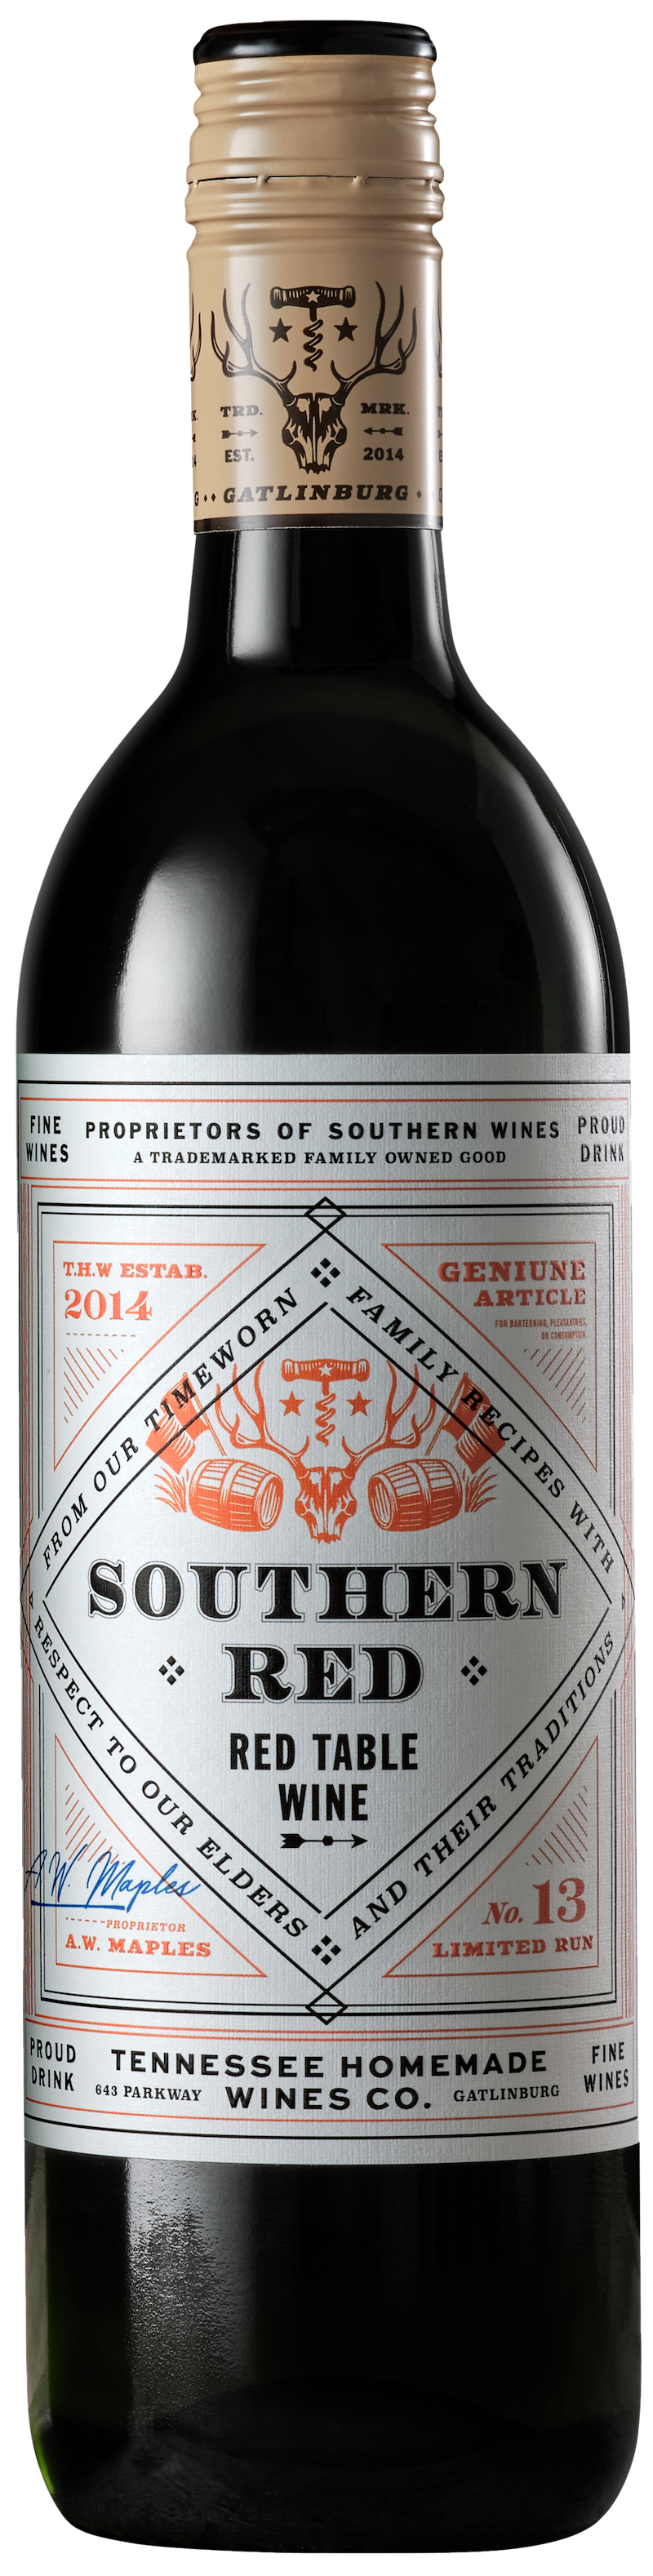 Tennessee Homemade Wines southern red wine